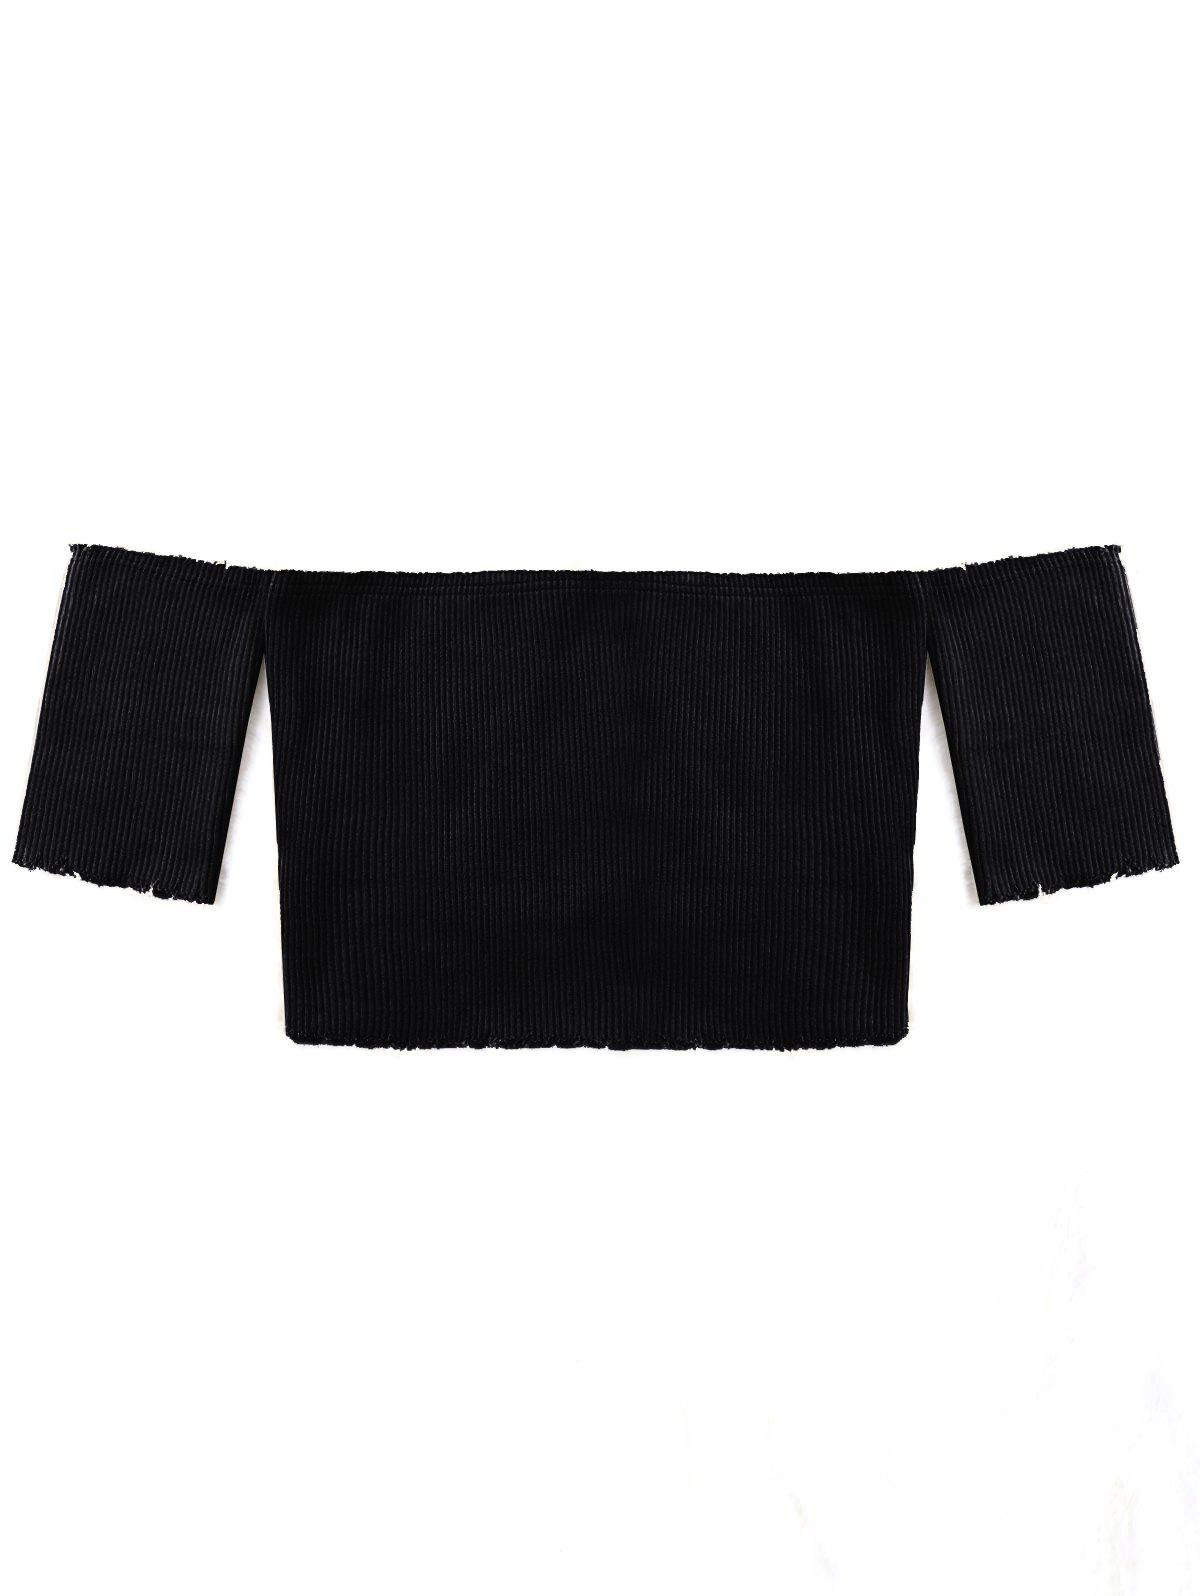 Short Sleeve Raw Edge Ribbed Cropped Knitwear - BLACK M